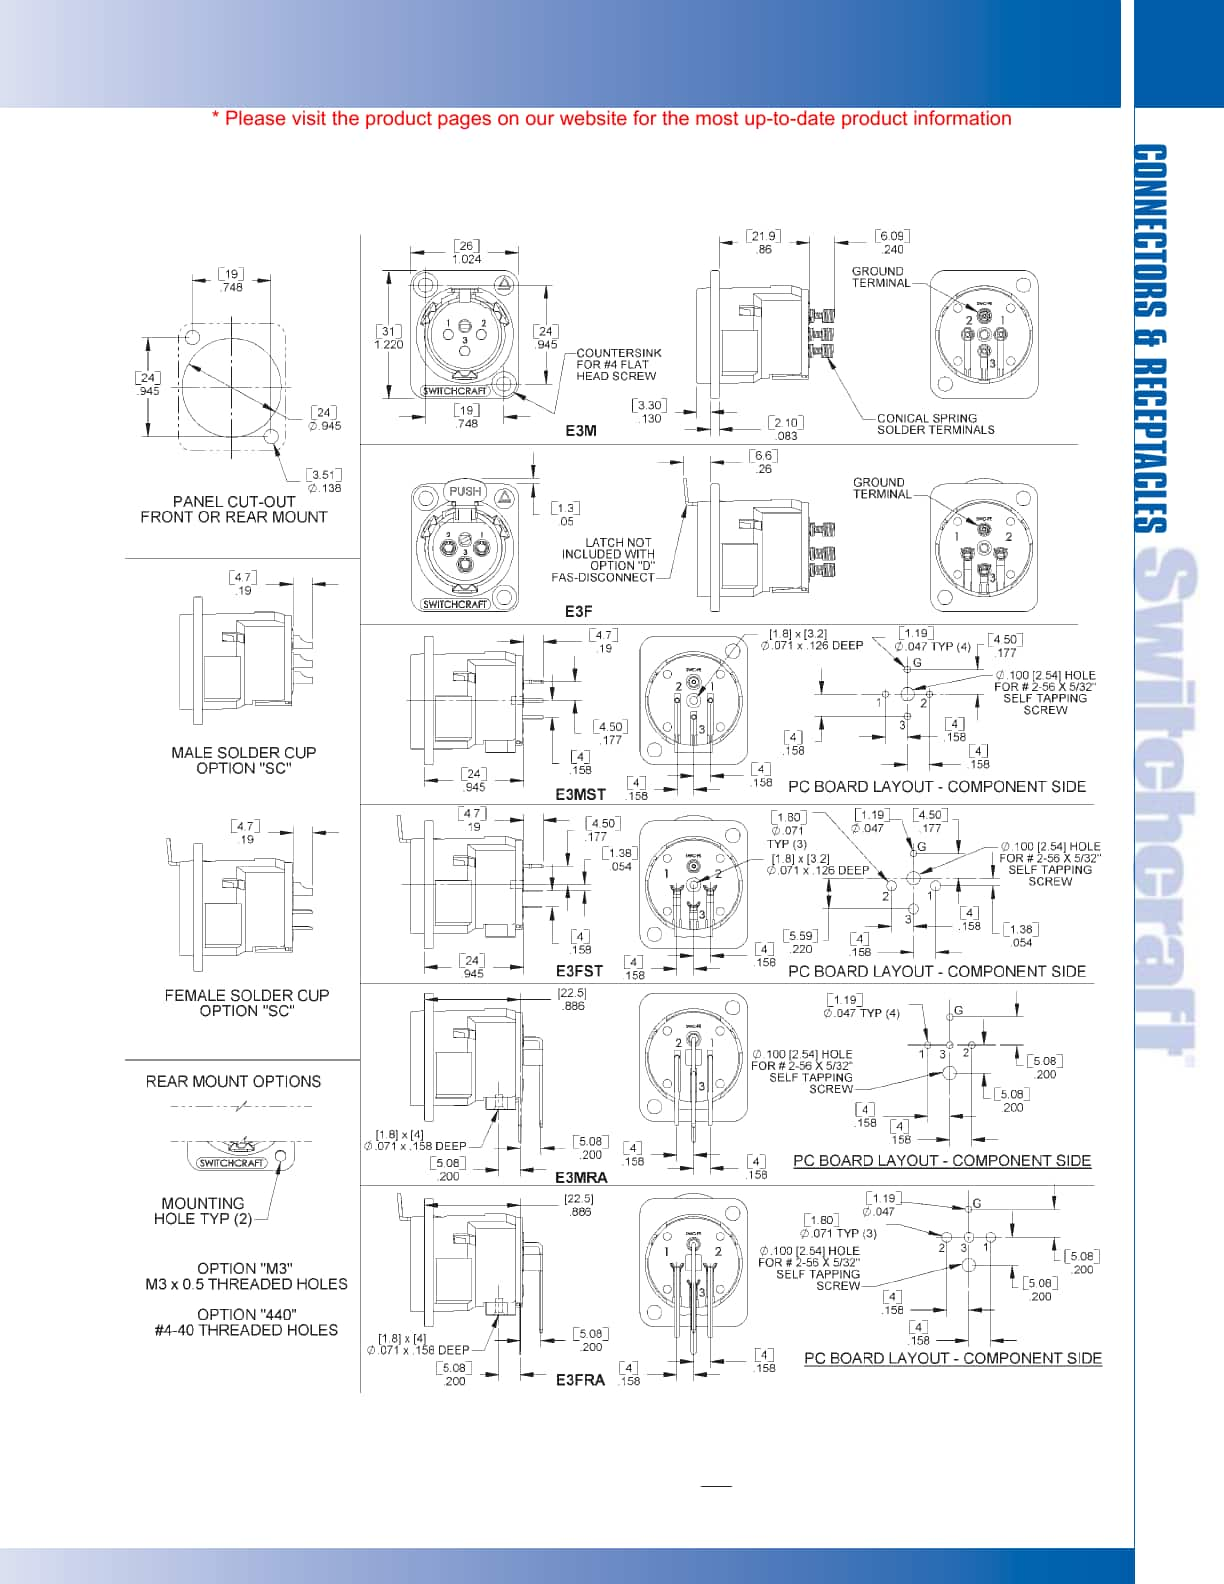 Cable Harness Design Engineer Cover Letter Din Plugs Receptacle Catalog Switchcraft Digikey